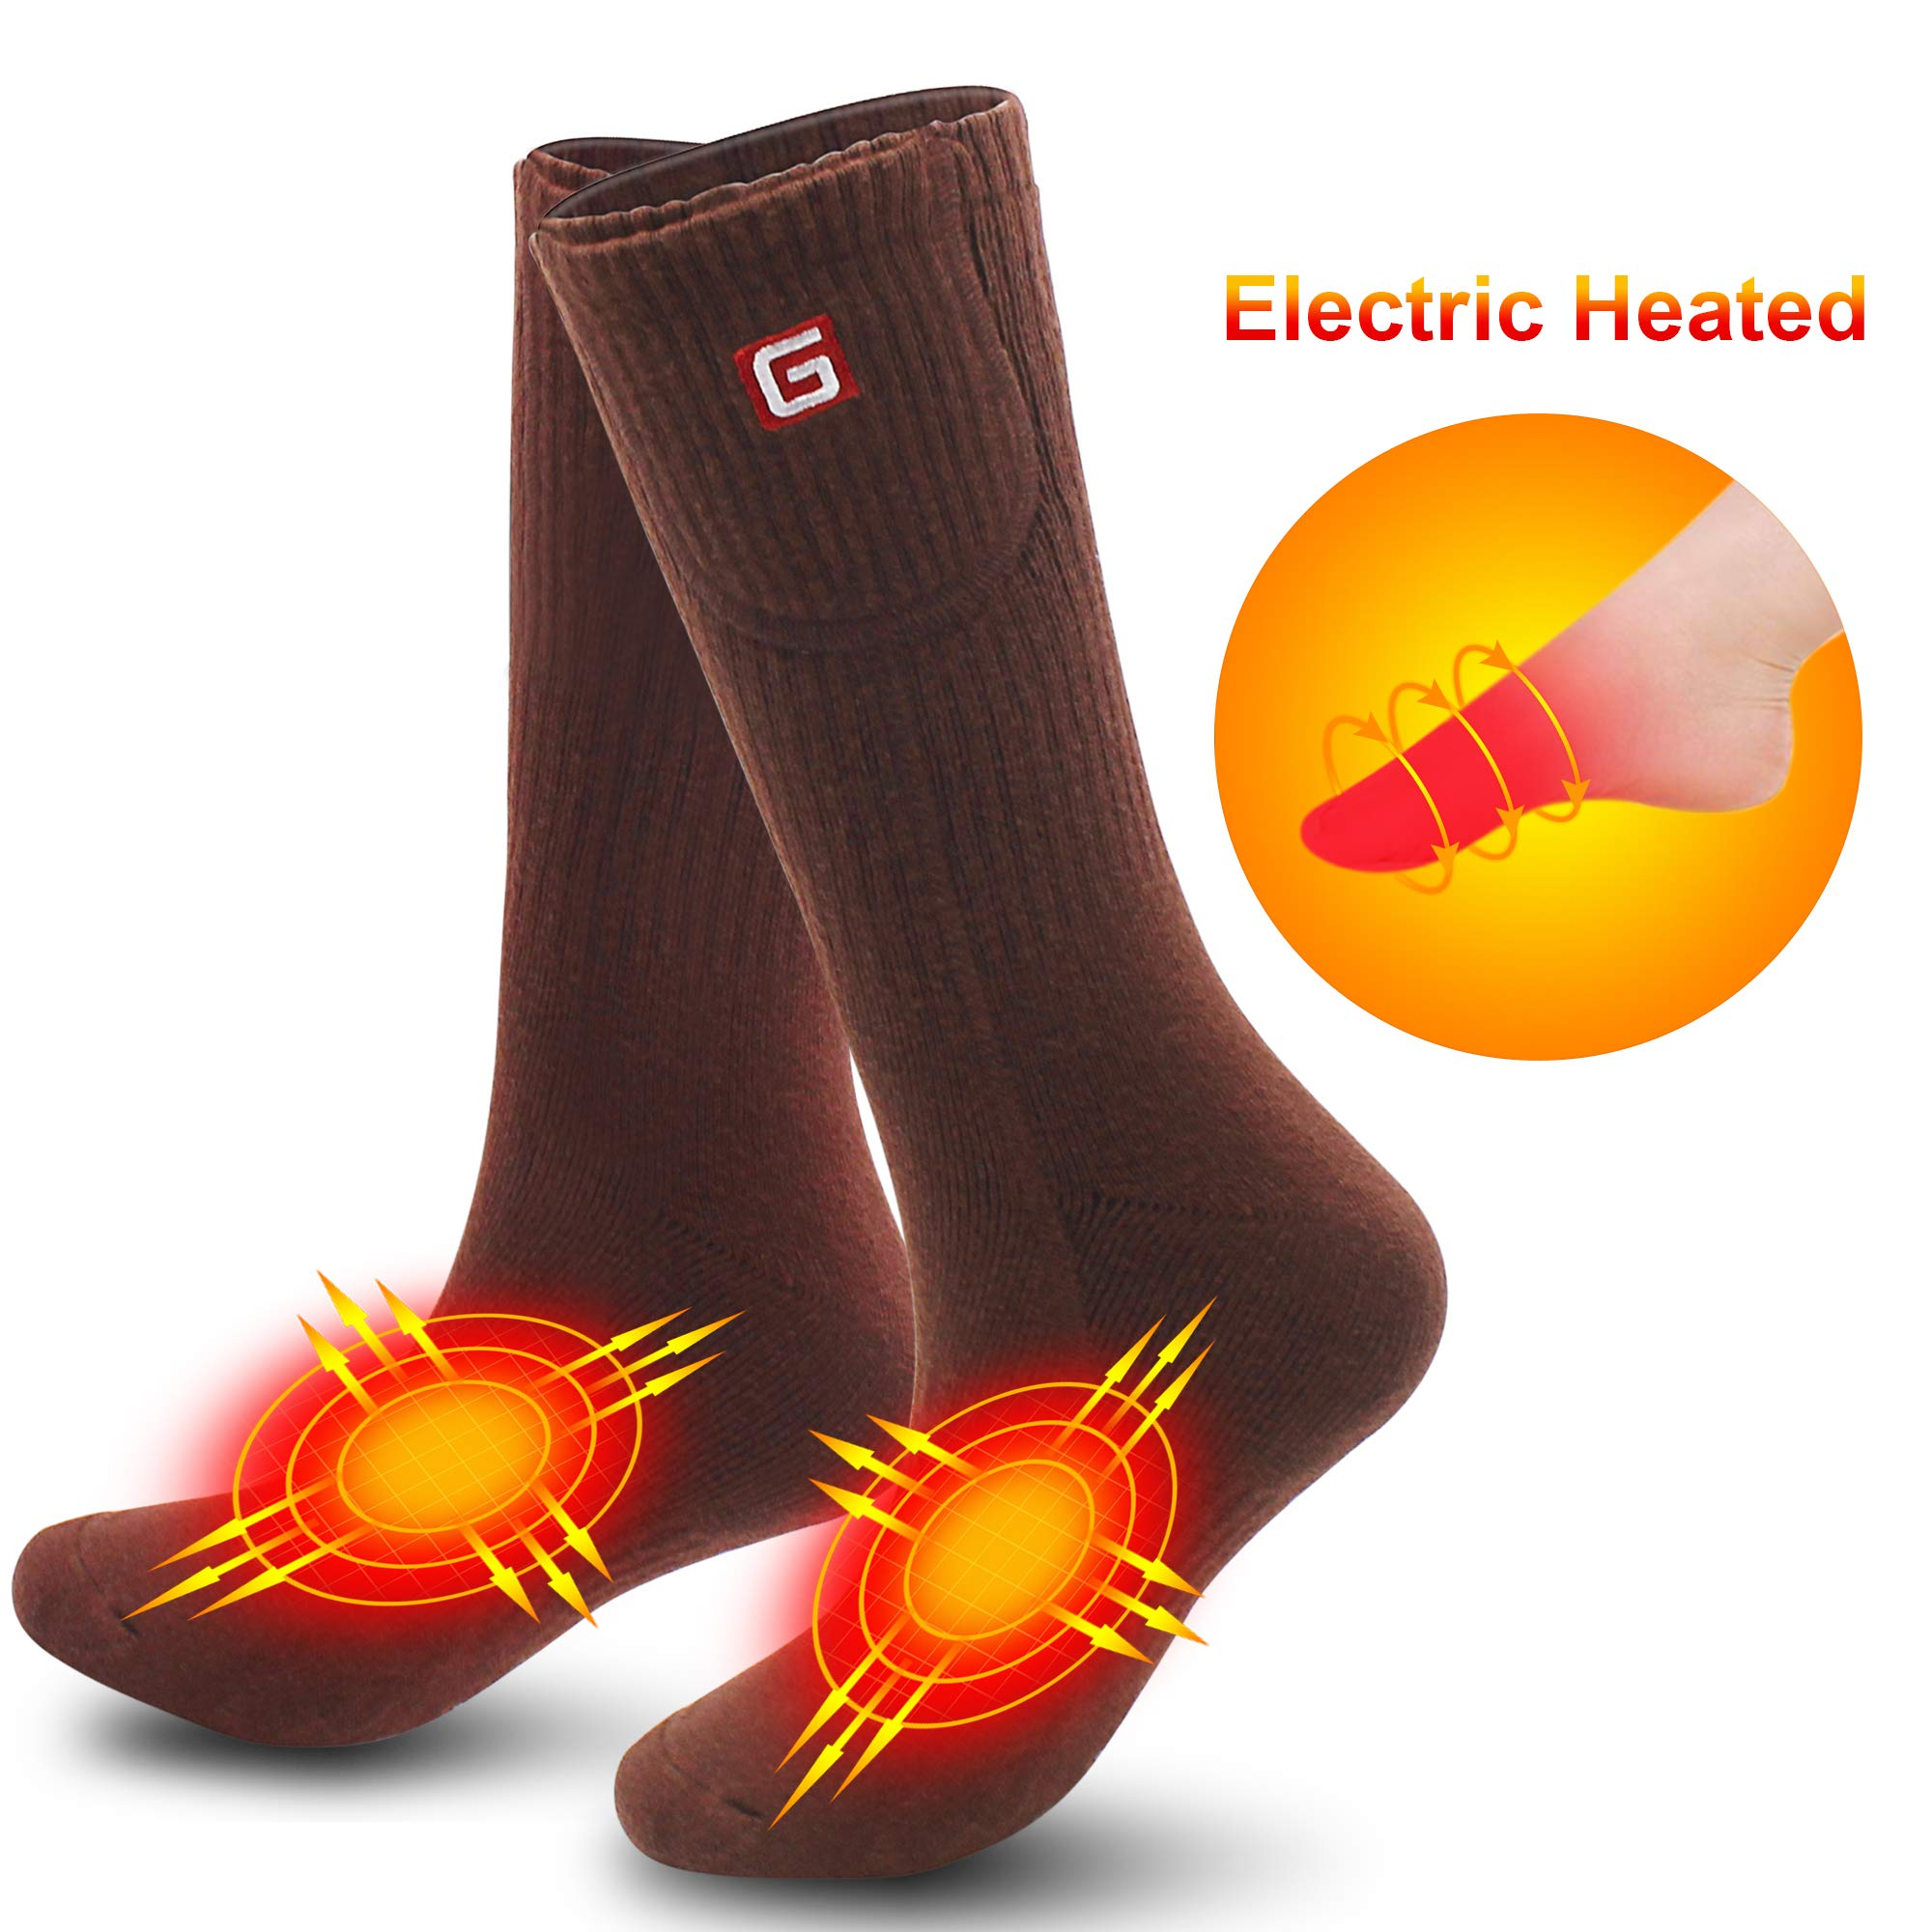 Rechargeable Battery Heated Socks Thick Knitting 3.7V Electric Heated Socks,Winter Unisex Socks for Men & Women, Rechargeable Socks for Fishing/Hiking/Sleeping Free Size (Brown-L) by MMlove